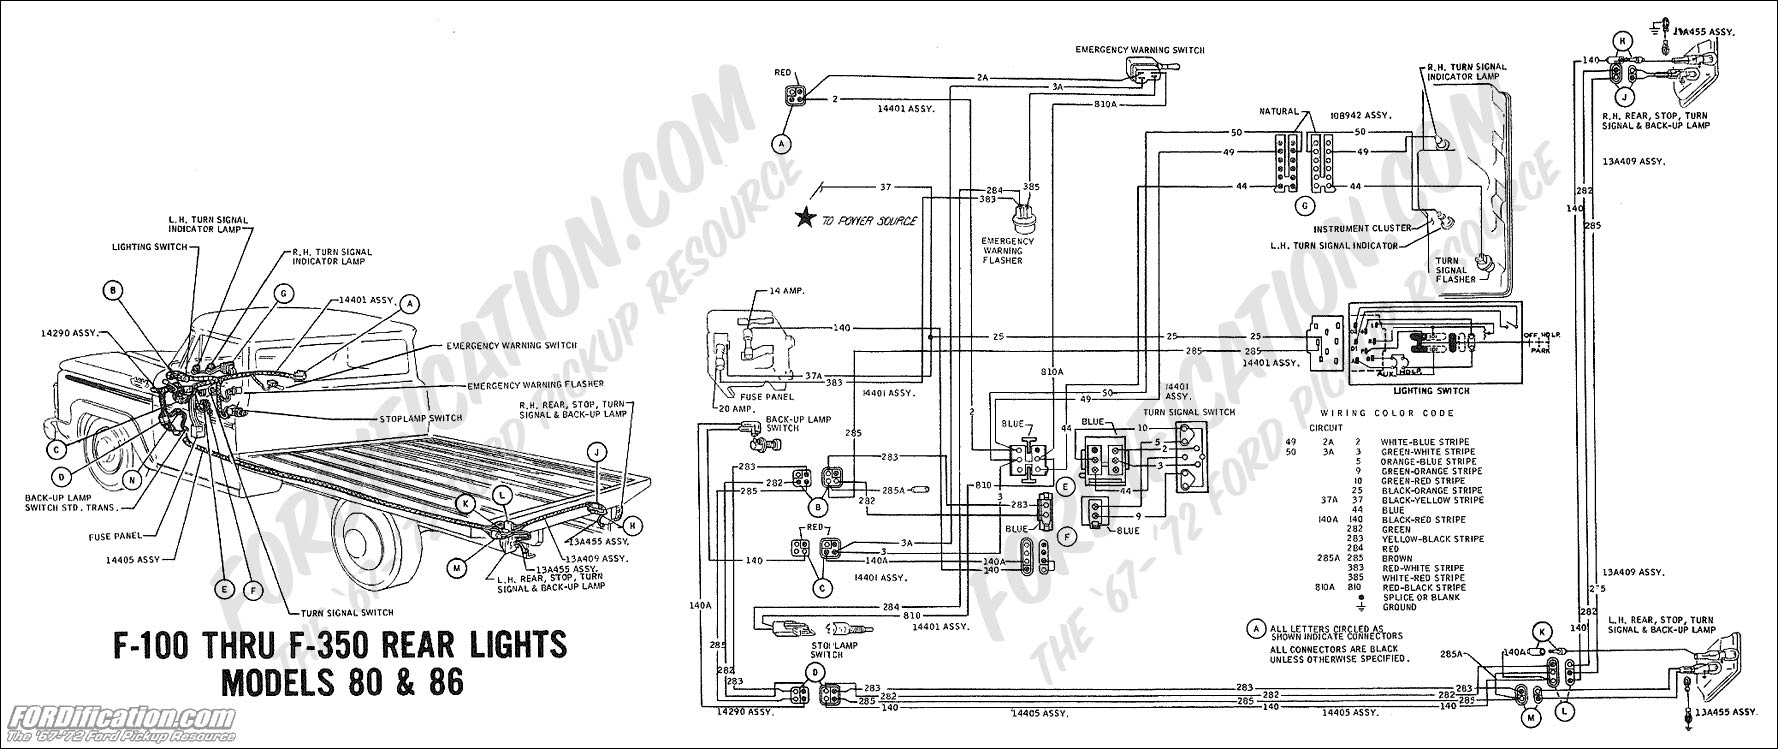 Wiring Diagrams For 1995 Ford F-350 Pickup Wiper Motor